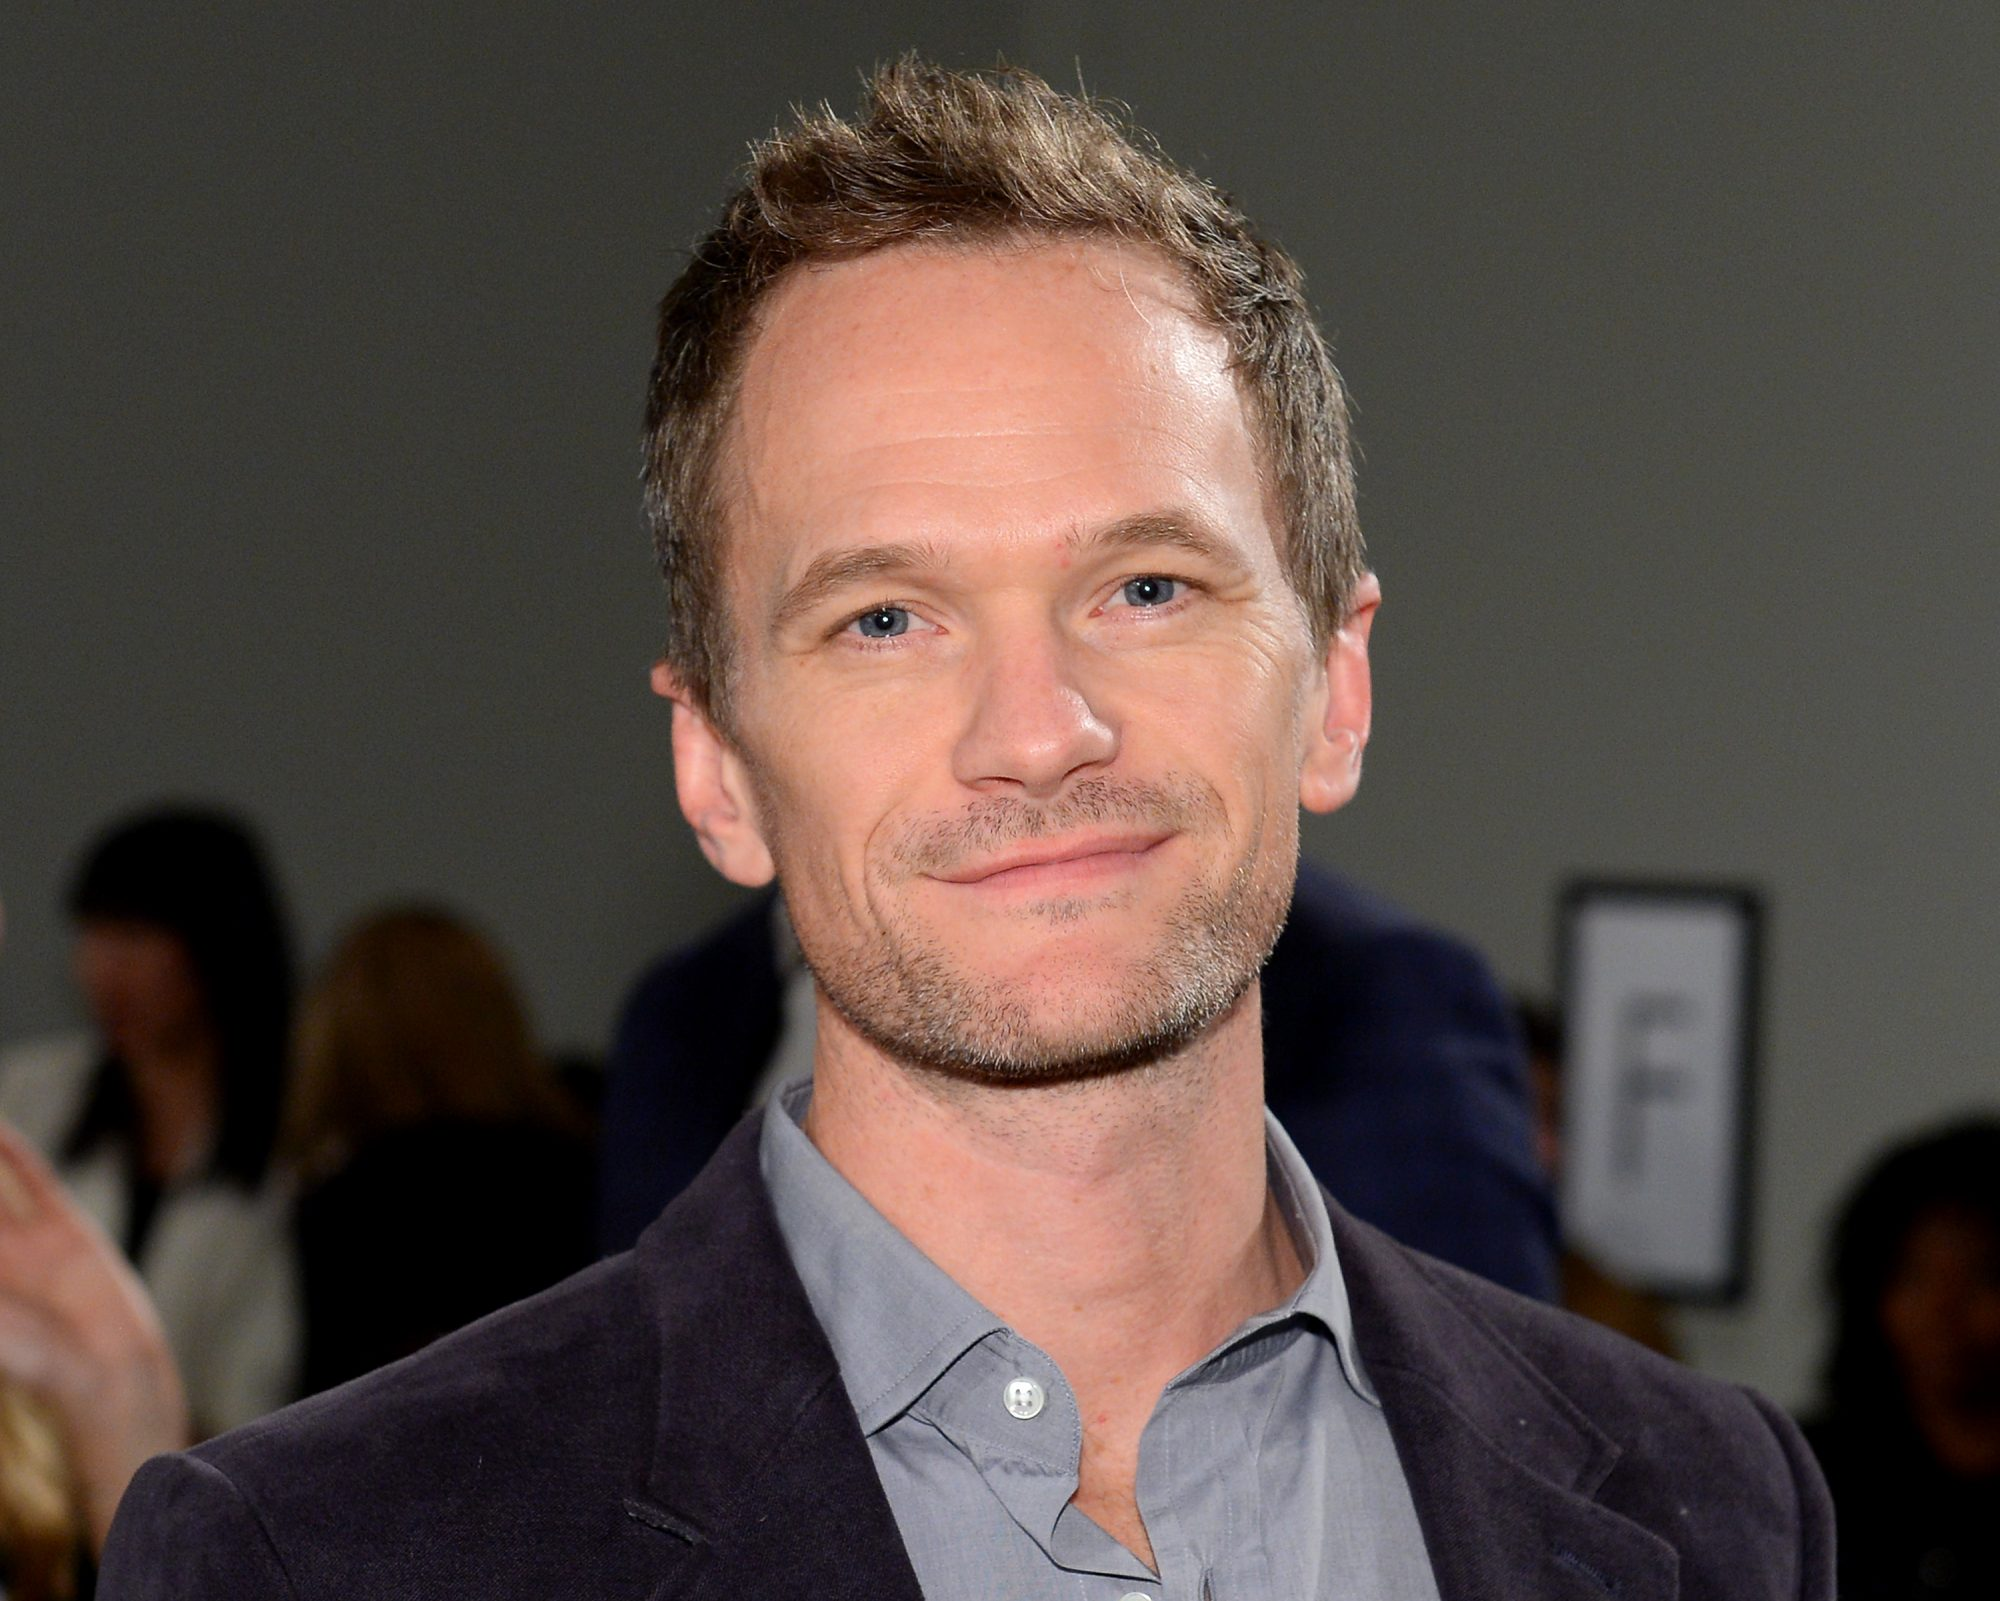 Neil Patrick Harris in Series of Unfortunate Events